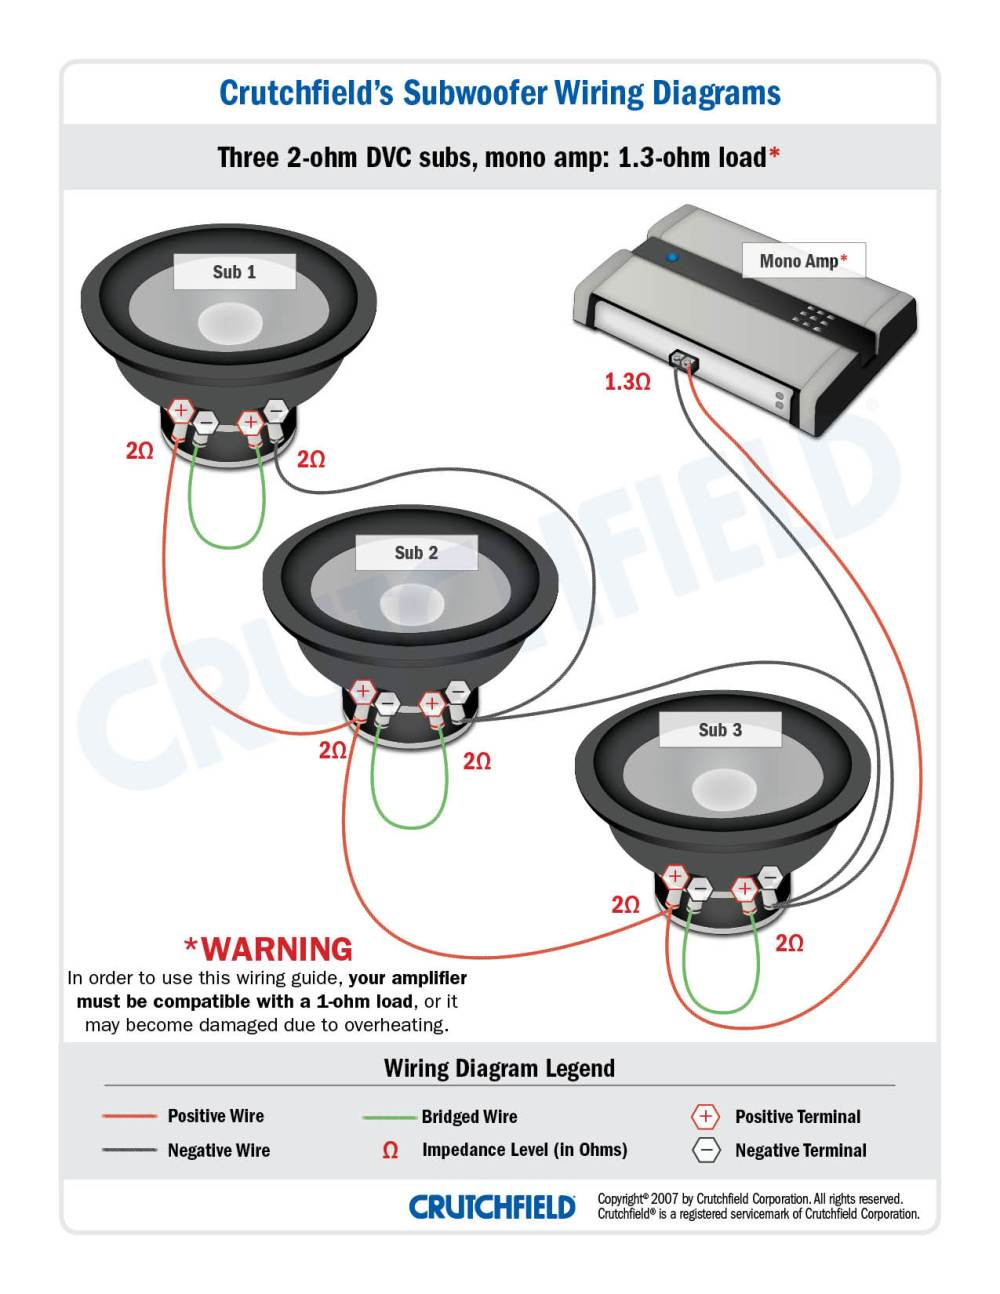 medium resolution of ron three dvc 2 ohm subs get wired to a mono amp capable of driving a 1 ohm load